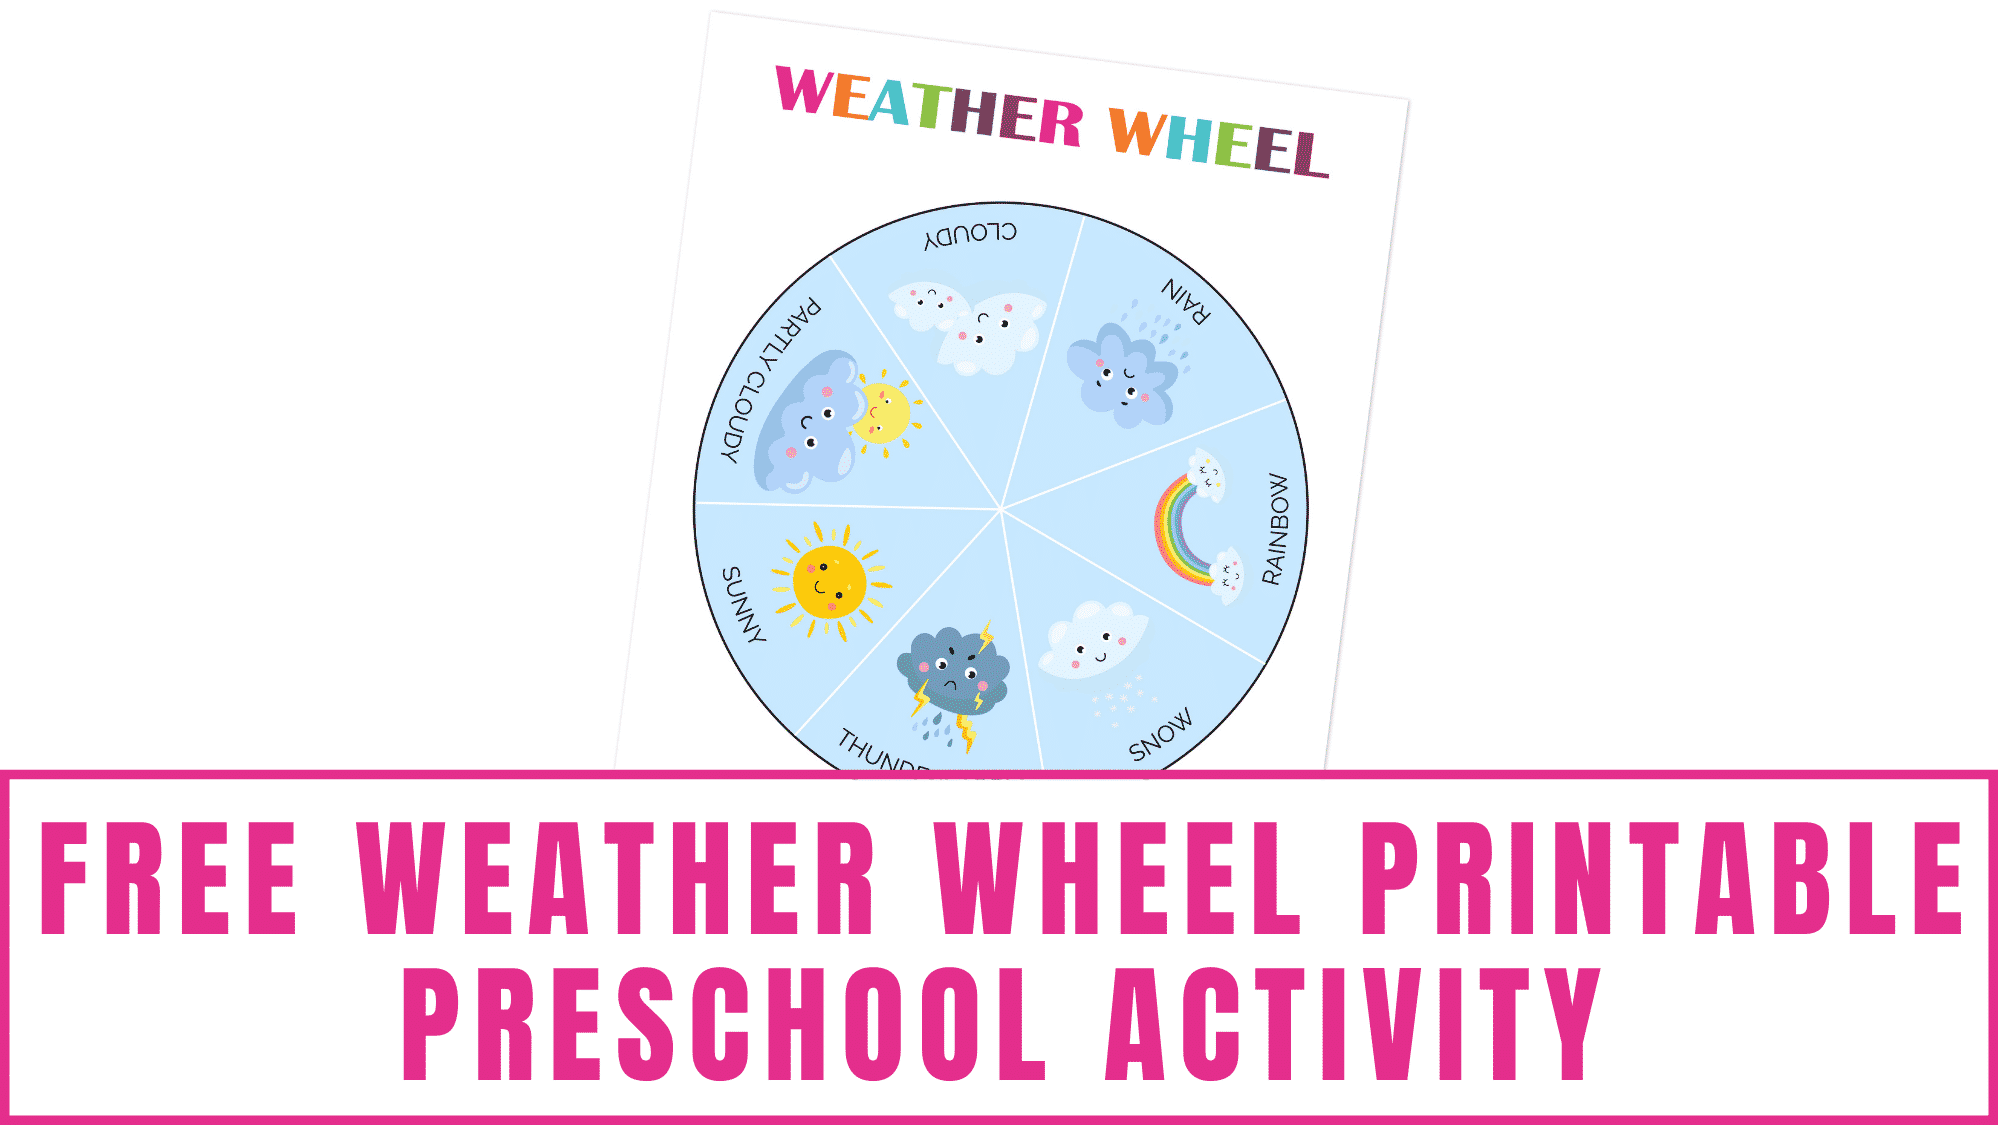 Looking for a fun and educational activity for preschoolers or kindergarteners? This free weather wheel printable preschool activity will get your kid excited about the day's weather and teach them about the various types of weather as well.